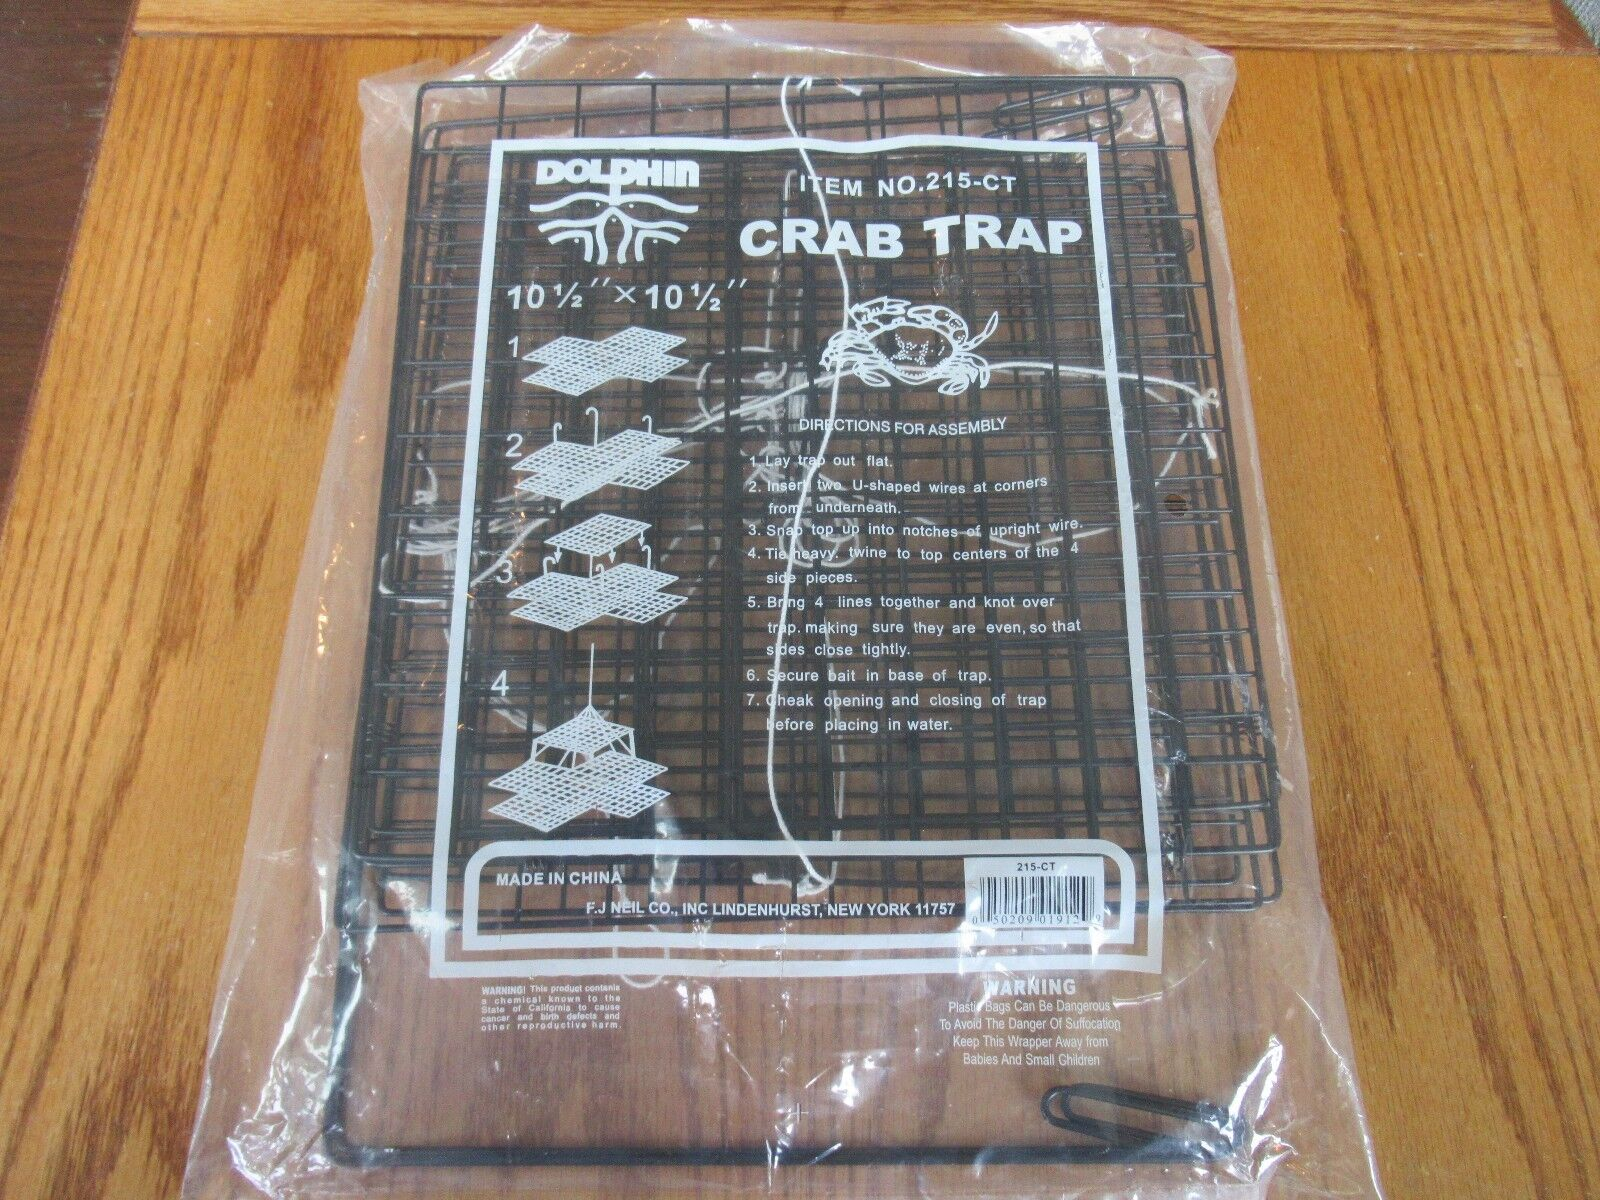 6 CRAB TRAP 215 - CT DOLPHIN BRAND BOX TYPE COMPACT FOLDING CRABBING TRAPS